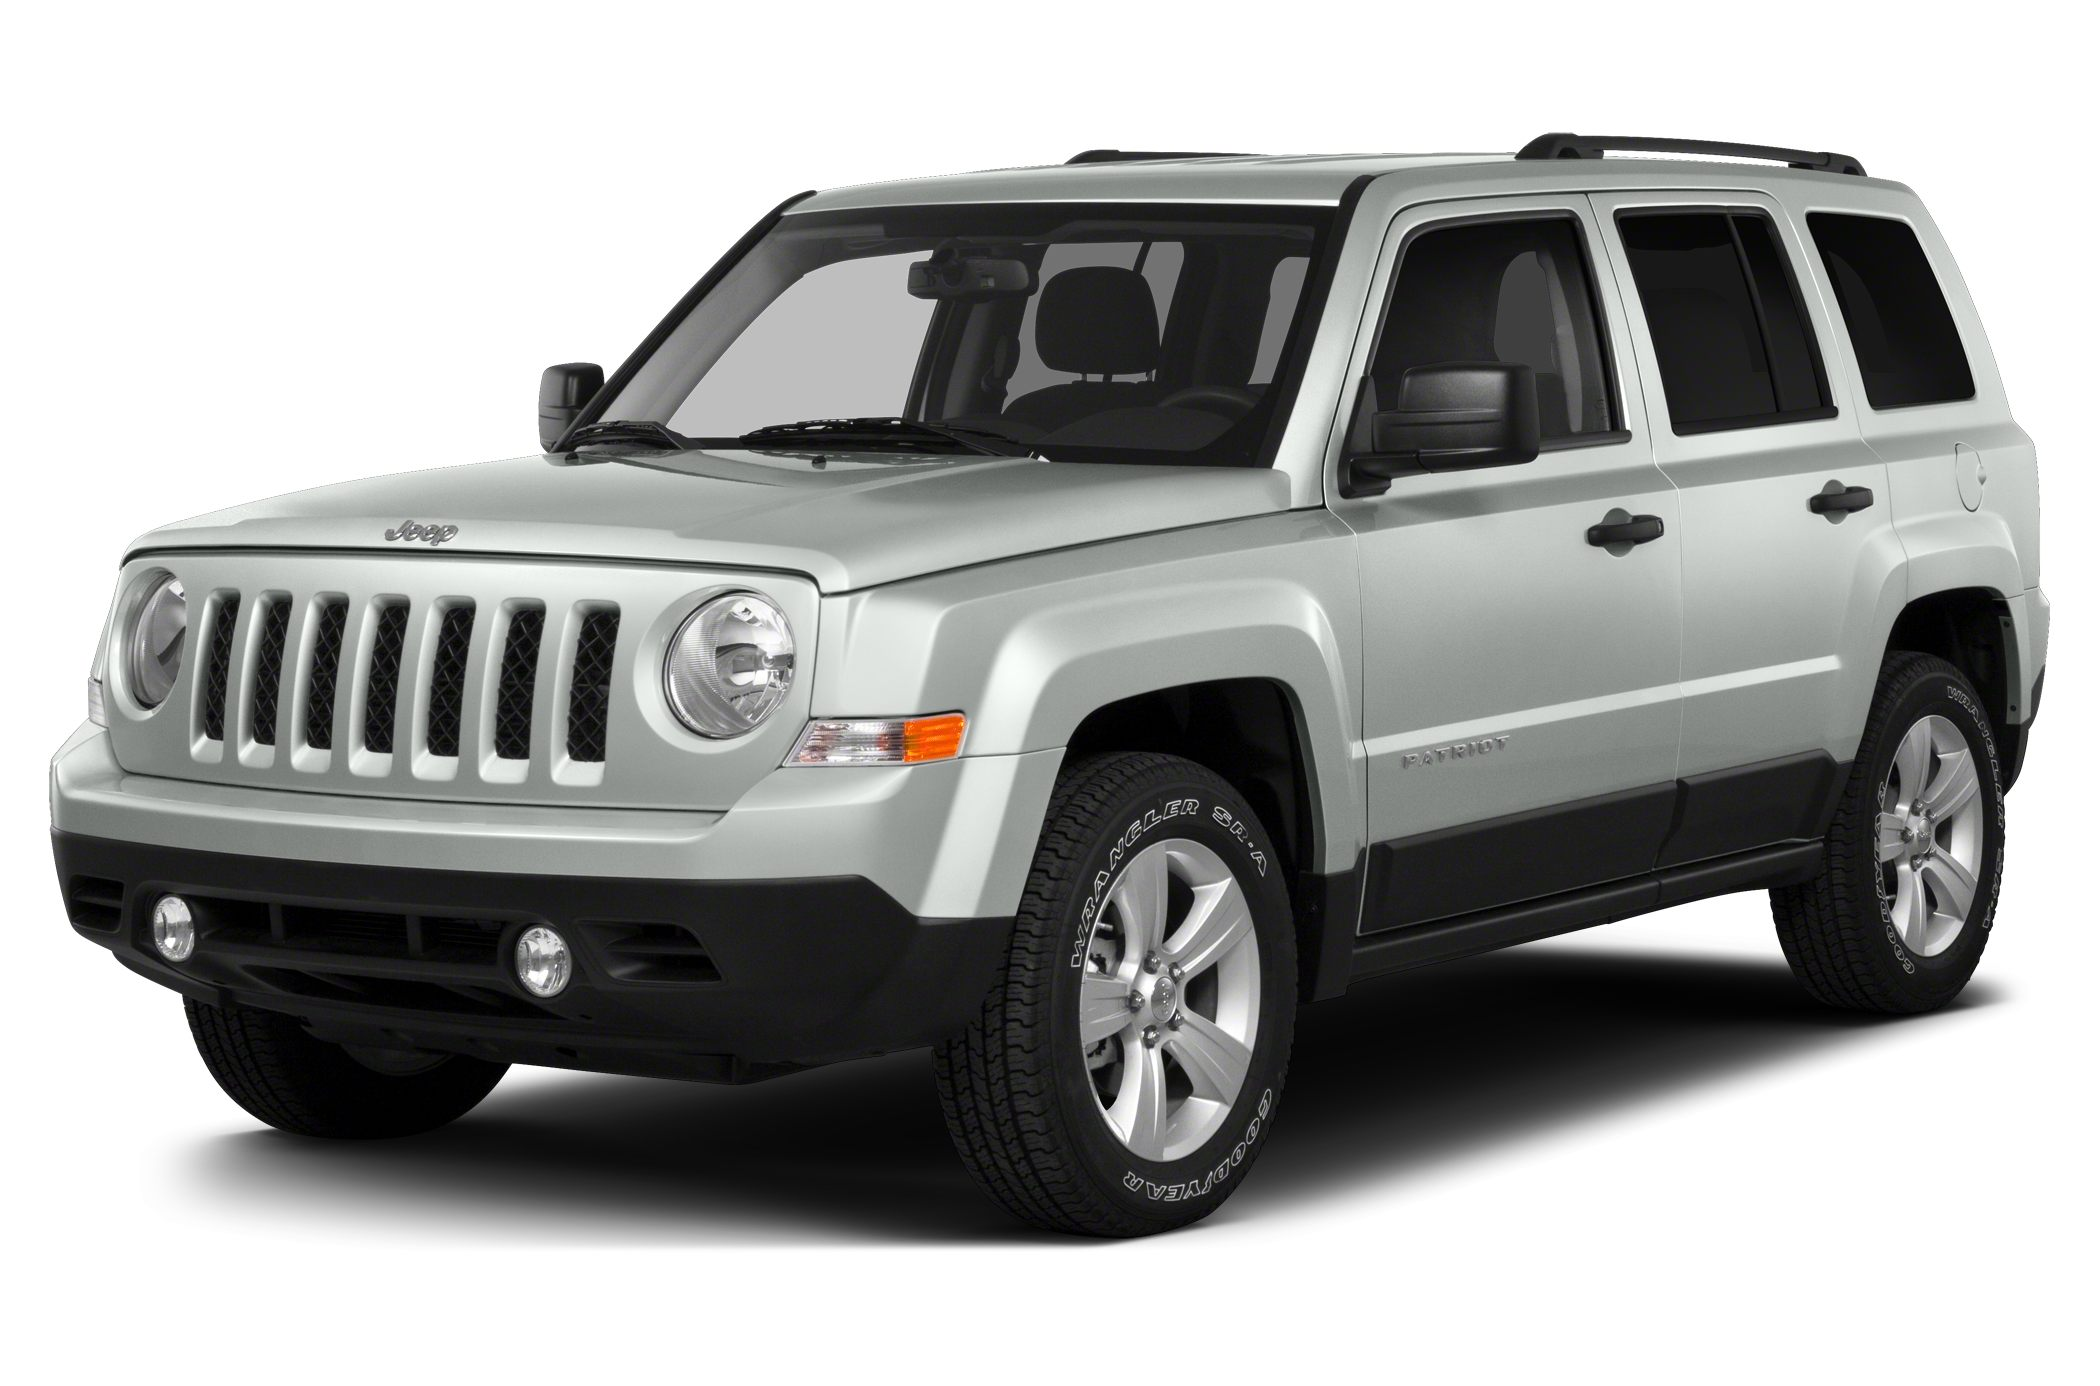 2015 Jeep Patriot Sport SUV for sale in Kansas City for $20,317 with 2 miles.